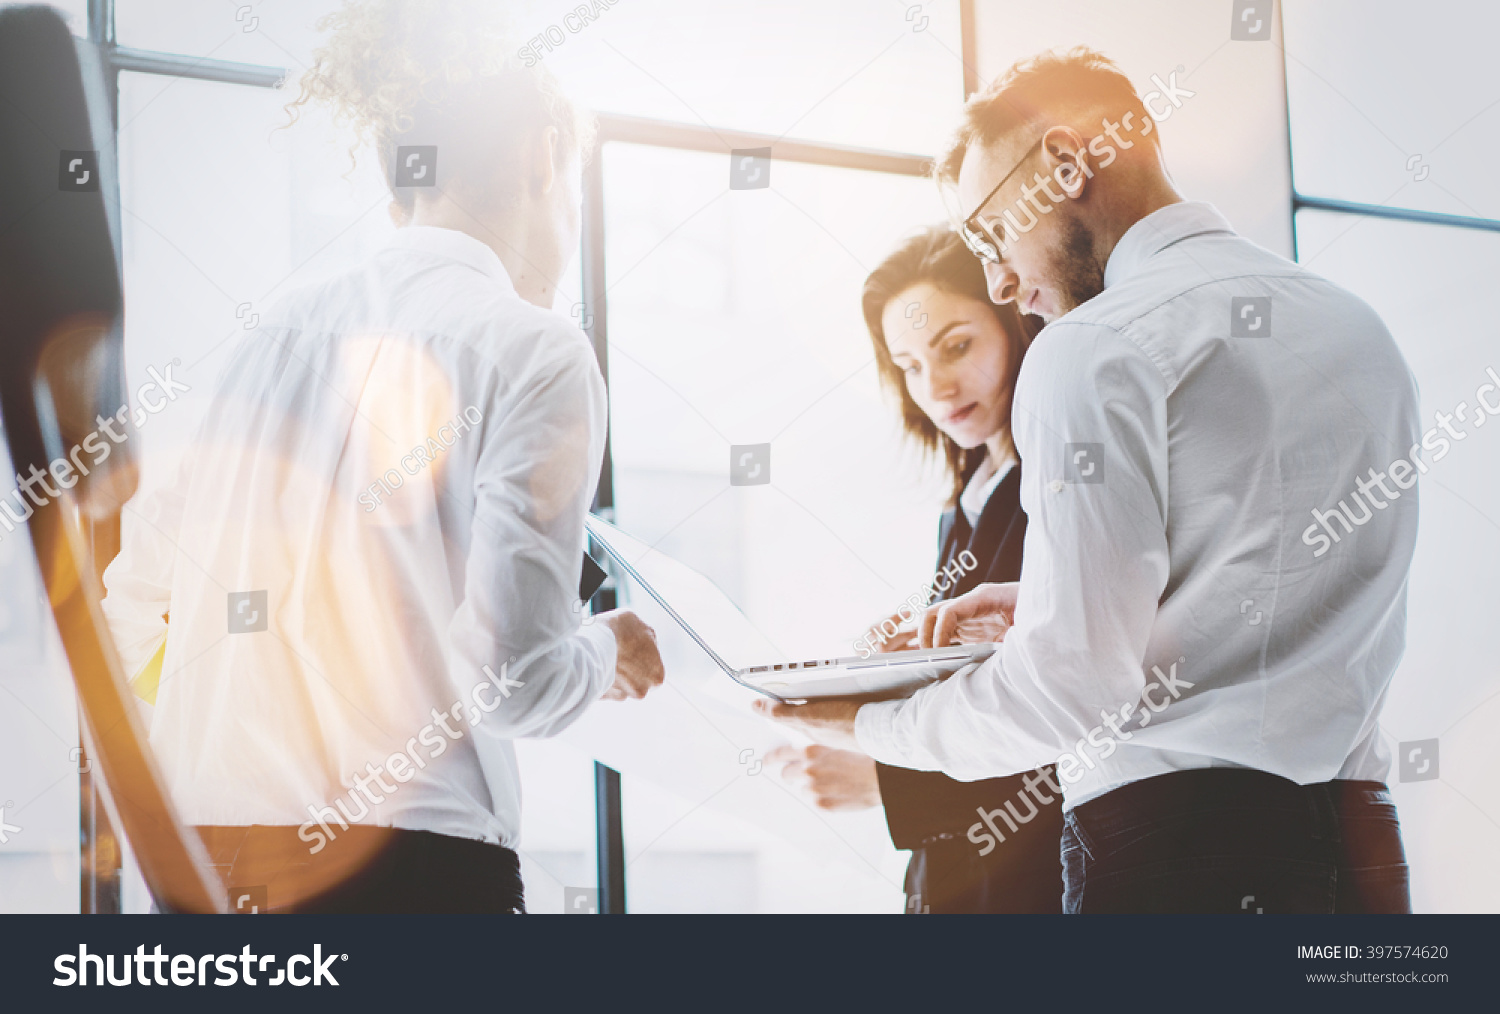 business team work process photo professional stock photo business team work process photo professional crew working new startup project project managers